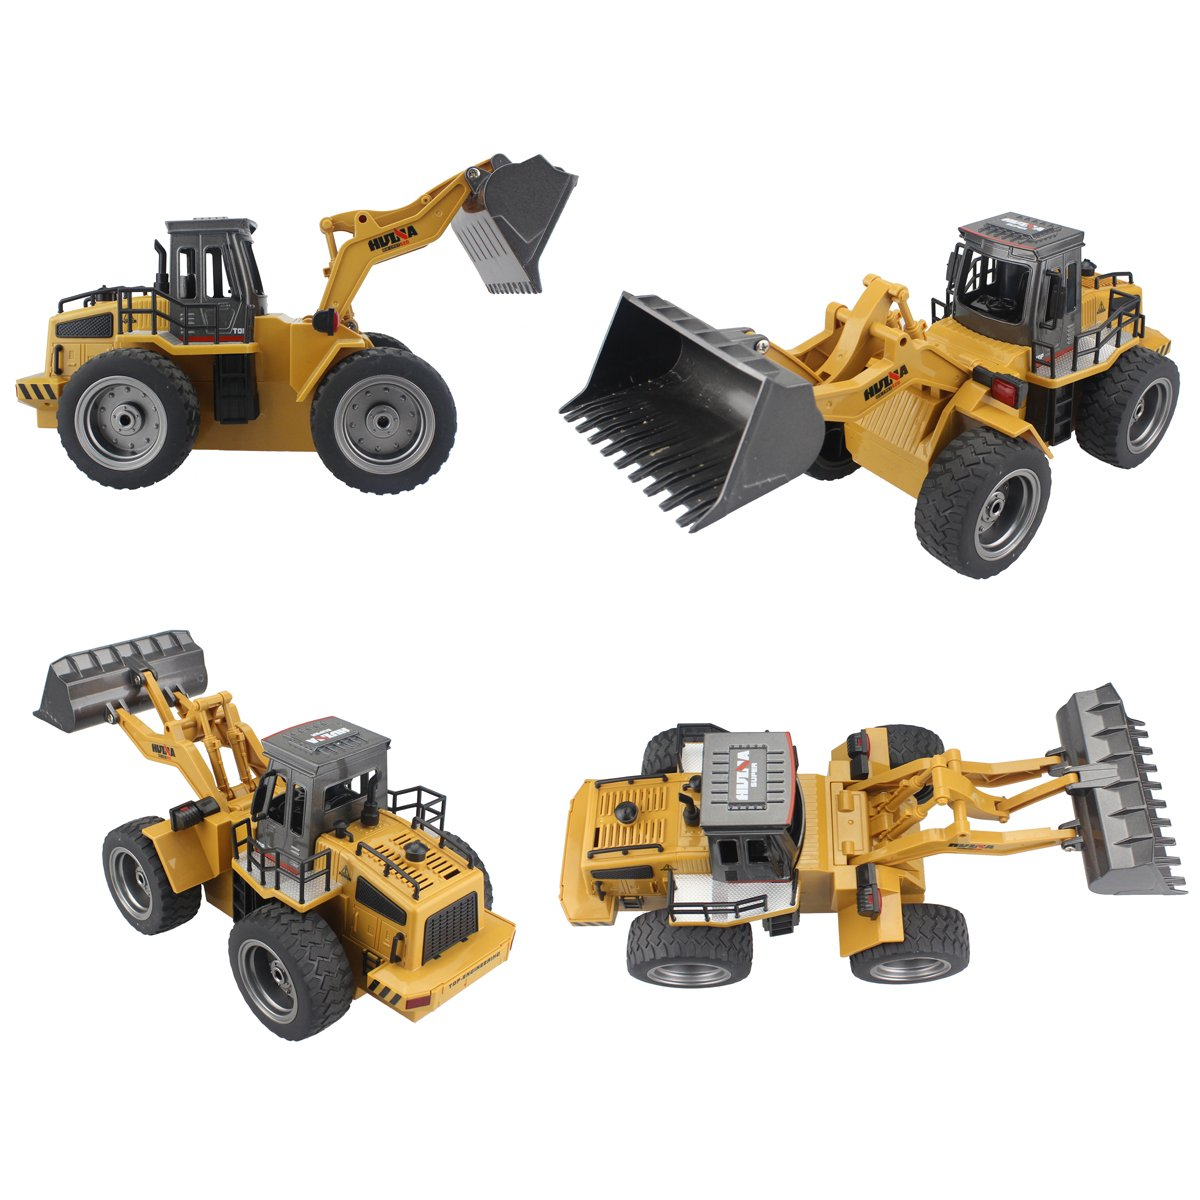 Fistone RC Truck Alloy Shovel Loader Tractor 2.4G Radio Control 4 Wheel Bulldozer 4WD Front Loader Construction Vehicle Electronic Toys Game Hobby Model with Light and Sounds by Fistone (Image #2)